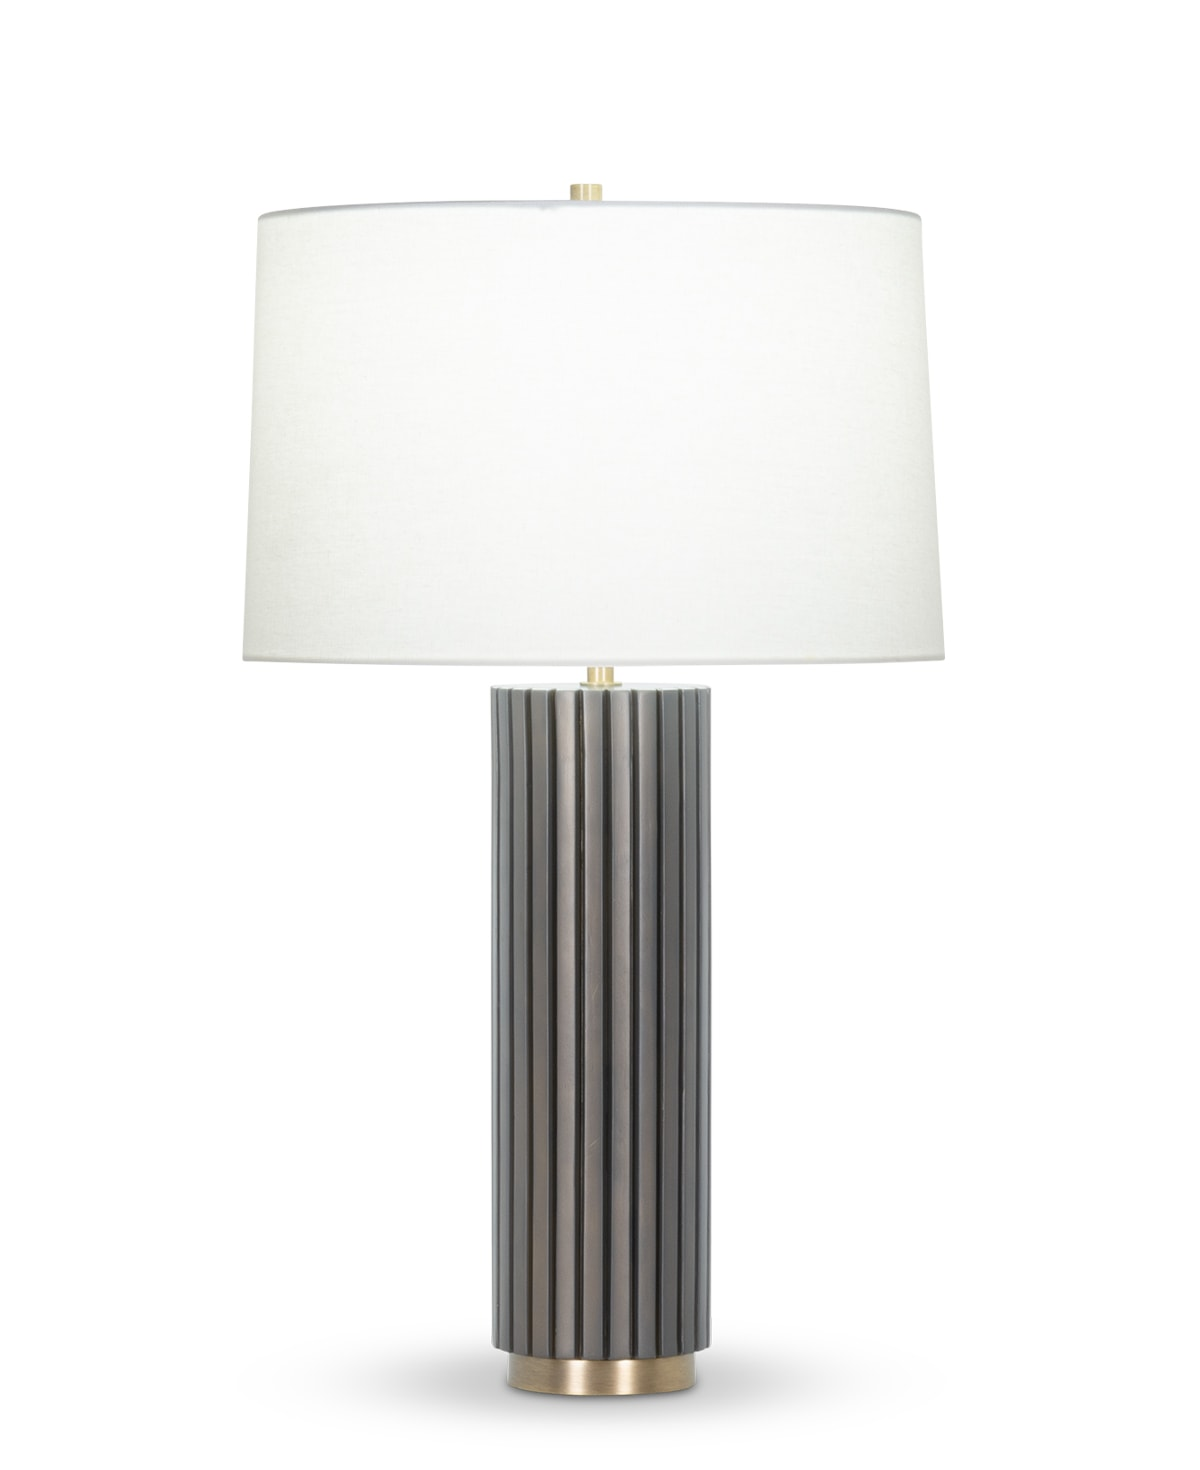 FlowDecor Meredith Table Lamp in resin with dark brown finish and metal with antique brass finish and off-white linen tapered drum shade (# 4440)